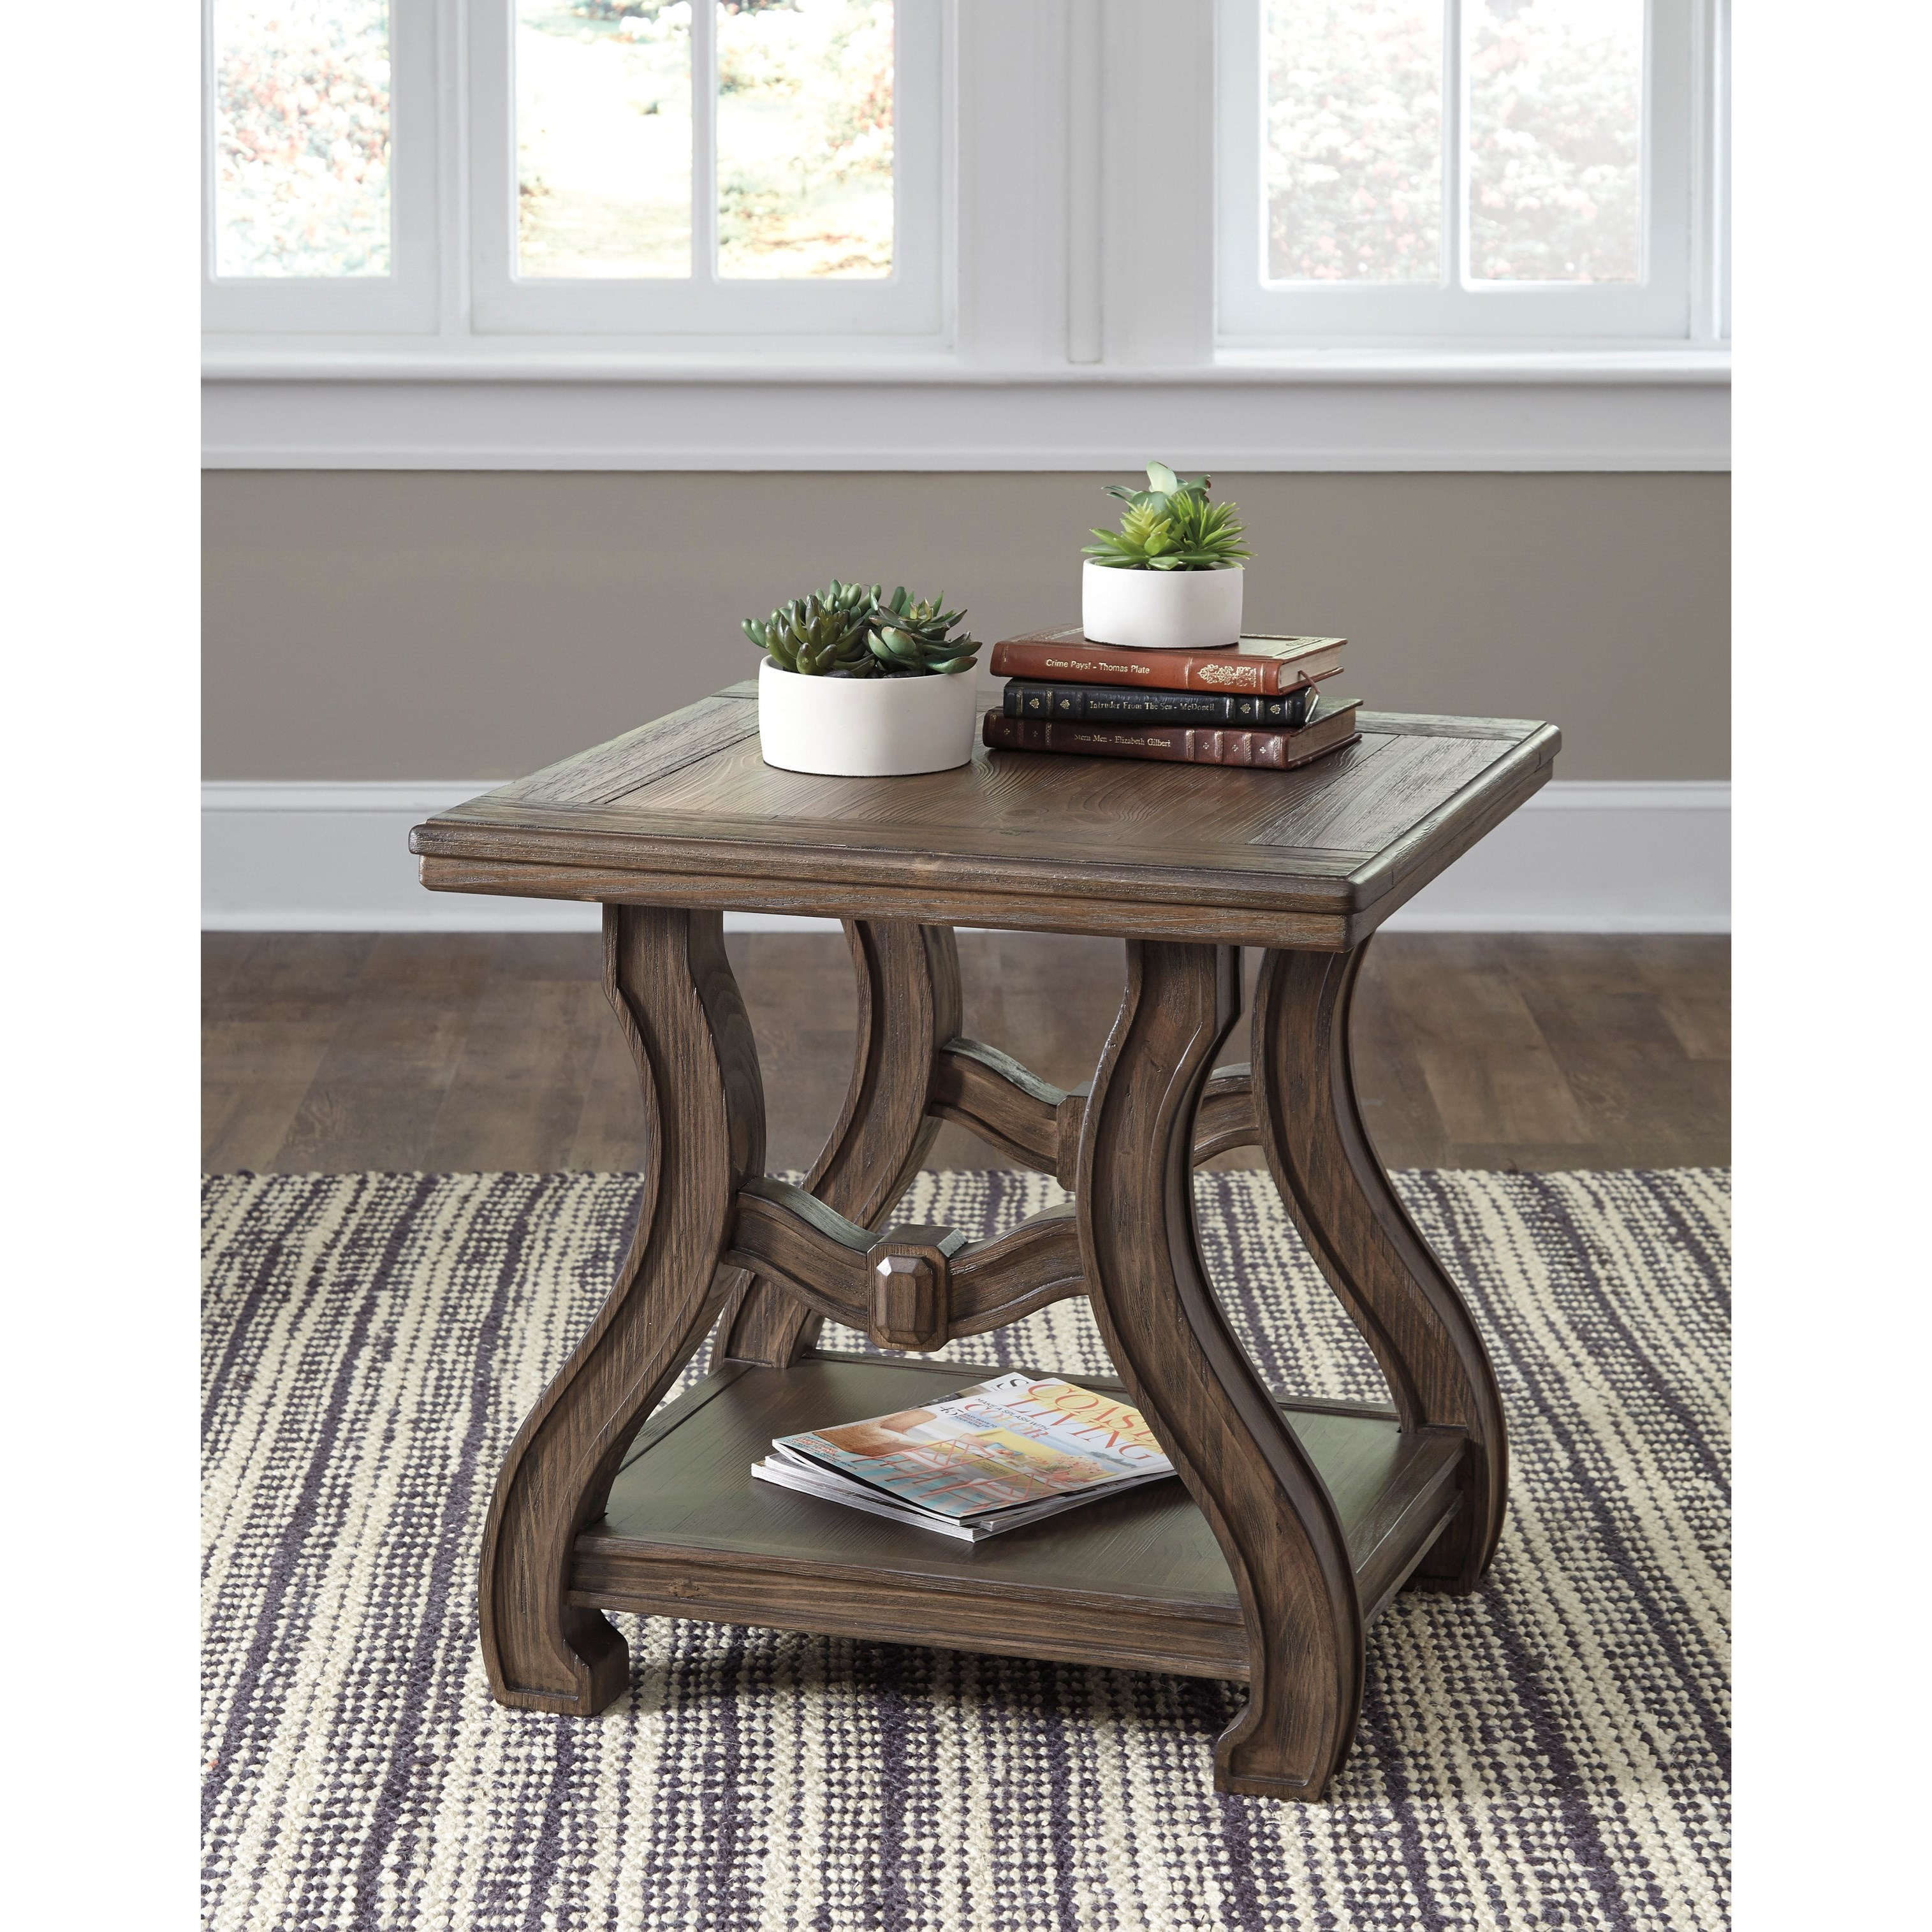 Signature Designs By Ashley Rollins Square End Table: Signature Design By Ashley Tanobay T046-2 Square End Table